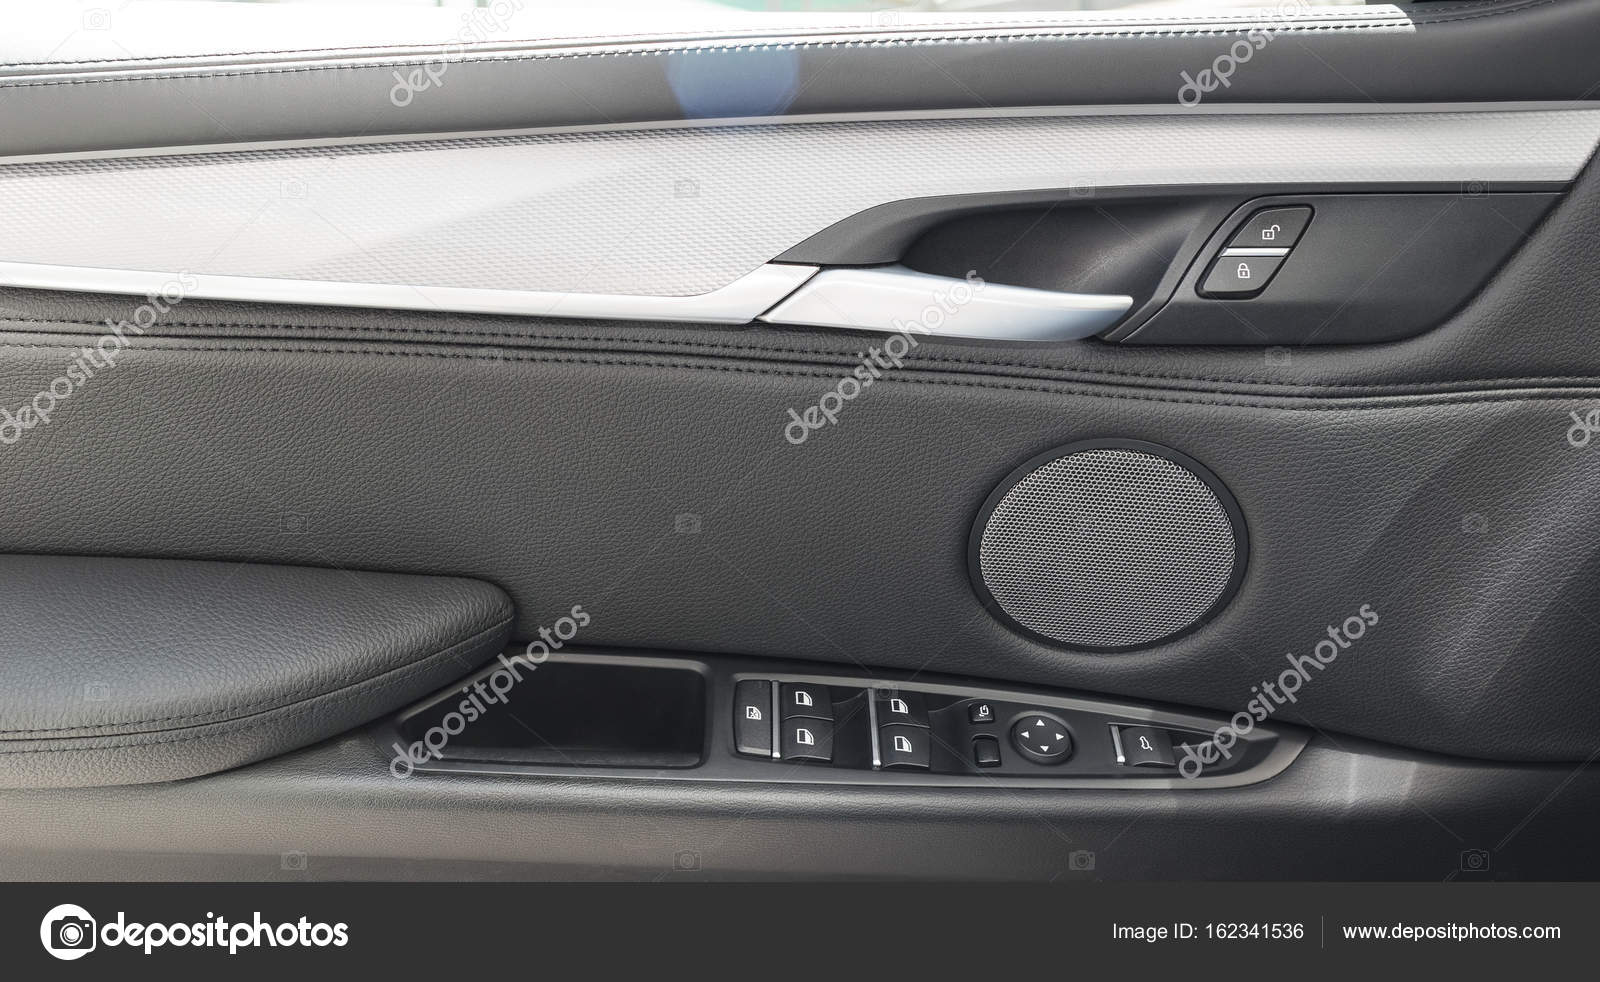 Inside car door handle Interior Car Car Door Handle Inside The Luxury Modern Car With Black Leather And Switch Button Control Modern Car Interior Details Photo By Bigtunaonline Aliexpress Car Door Handle Inside The Luxury Modern Car With Black Leather And